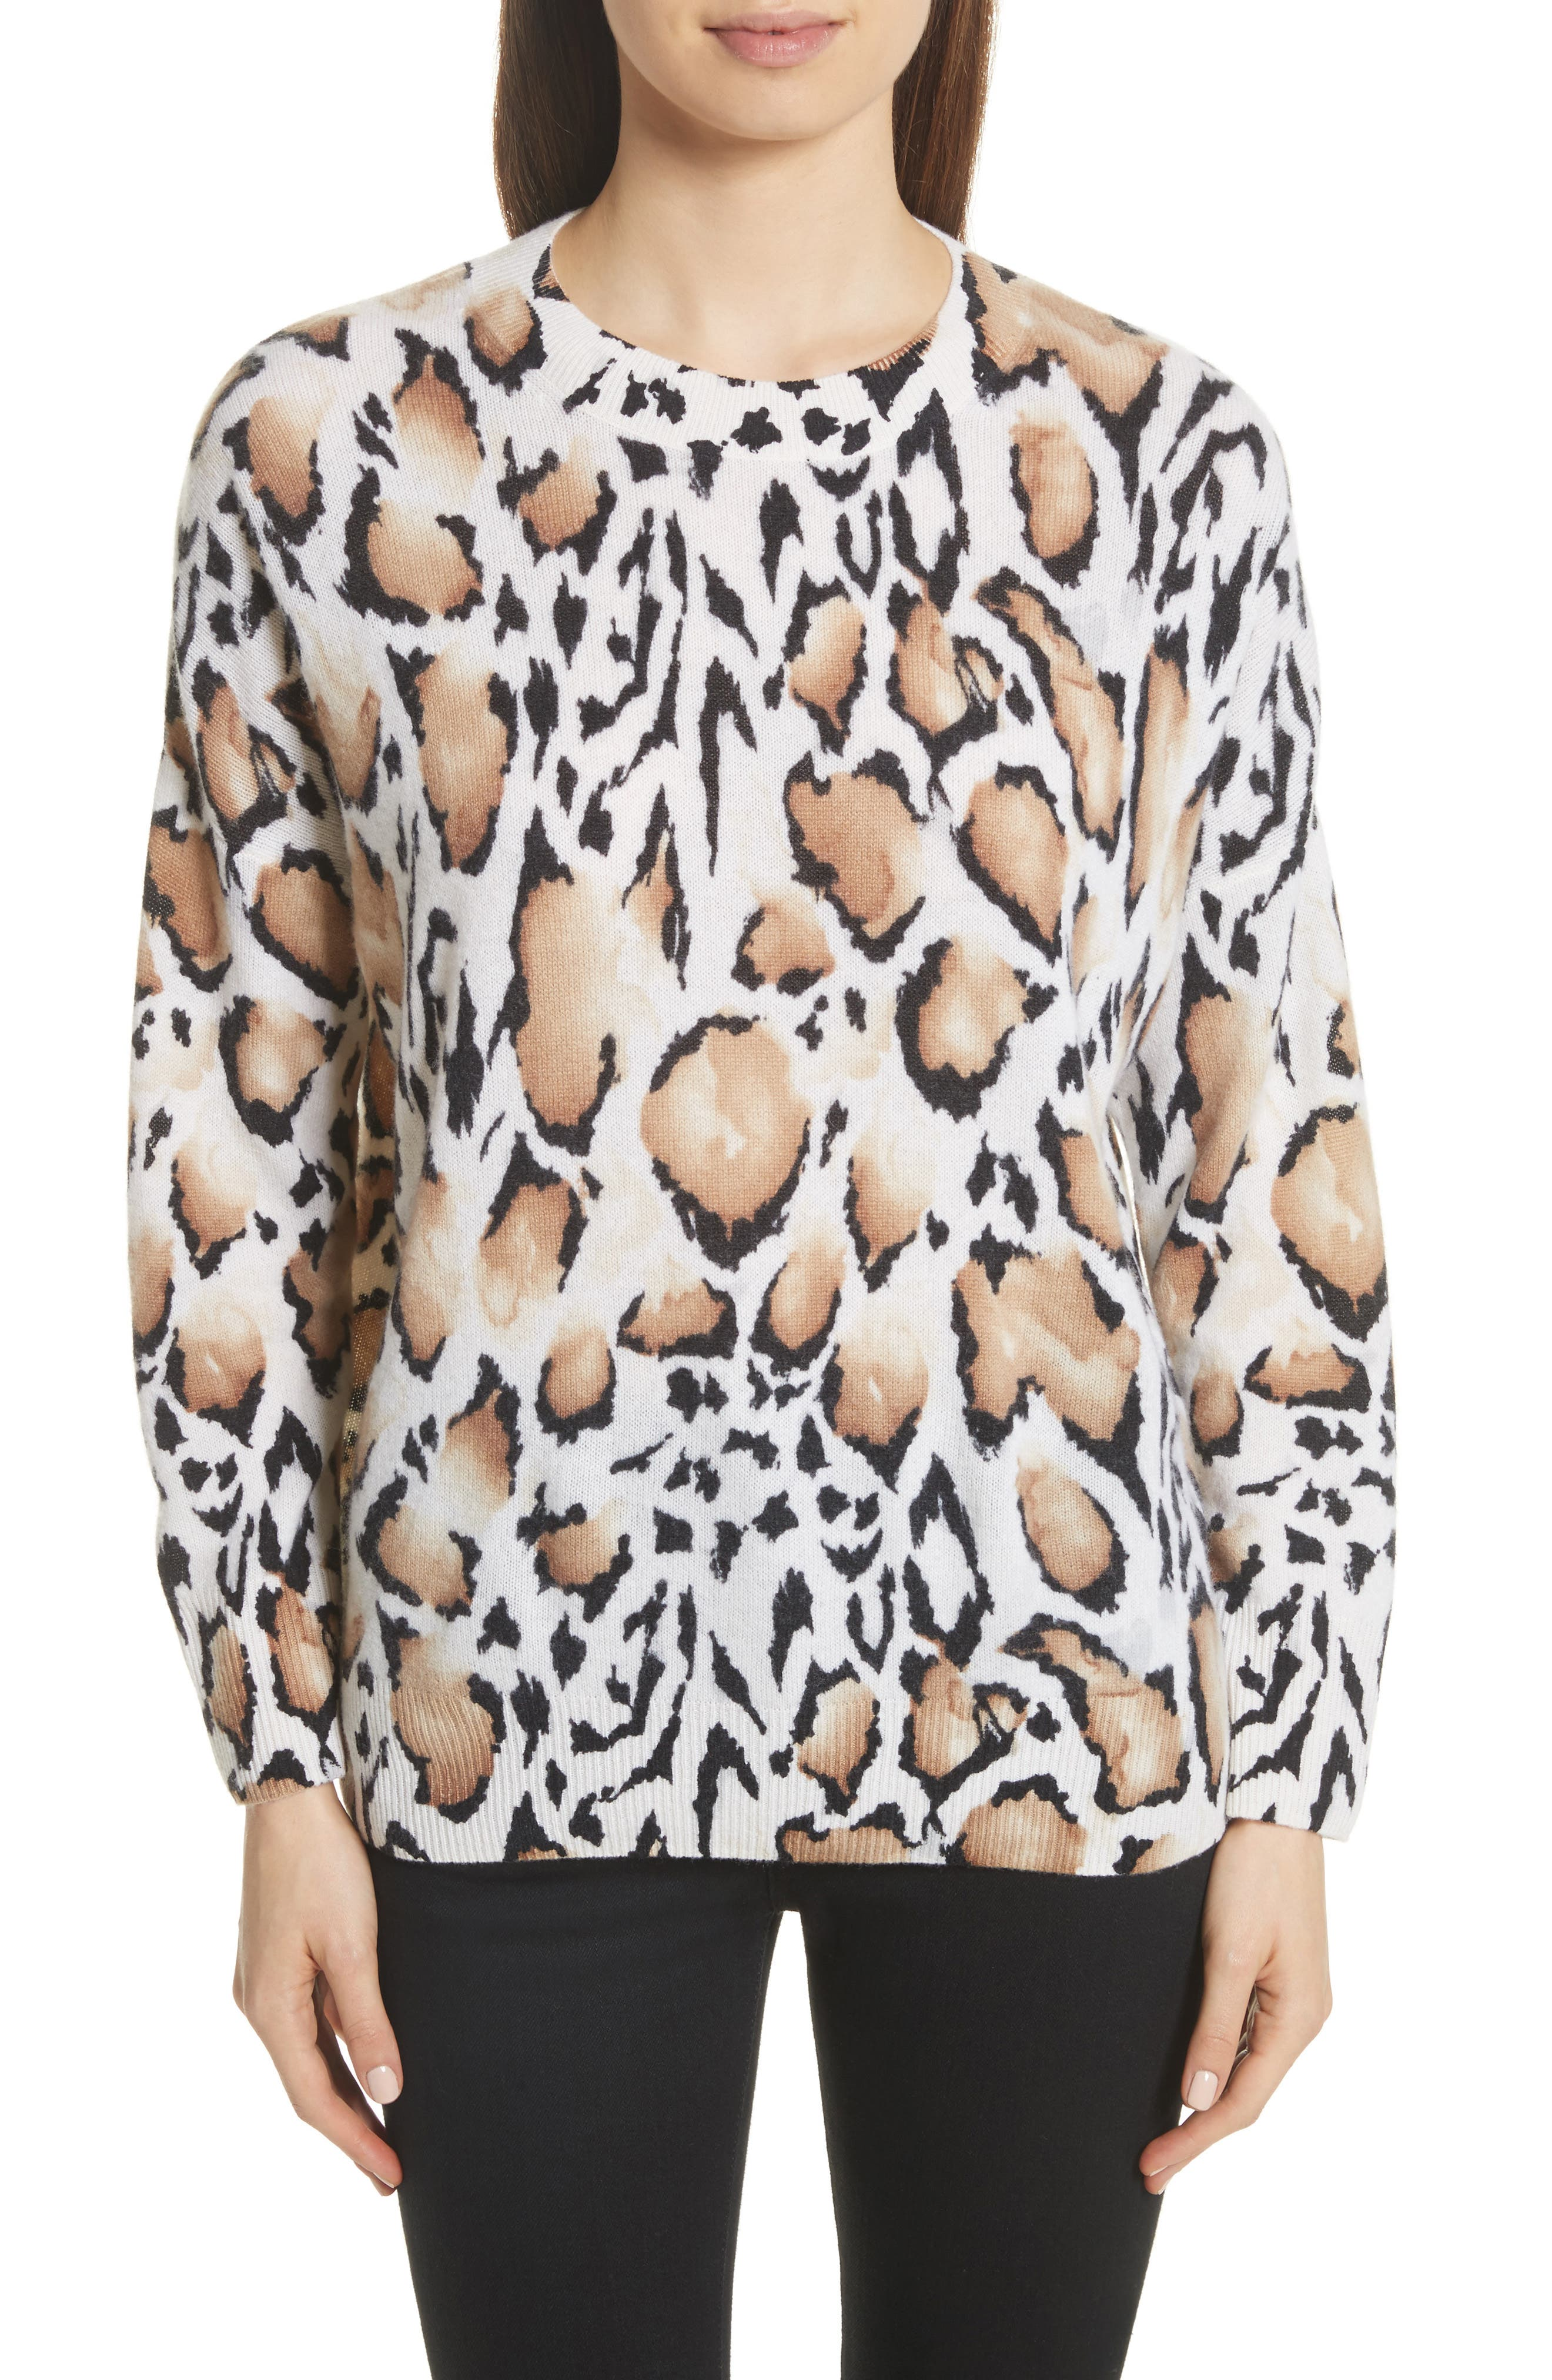 Alternate Image 1 Selected - Equipment Melanie Clouded Leopard Print Cashmere Sweater